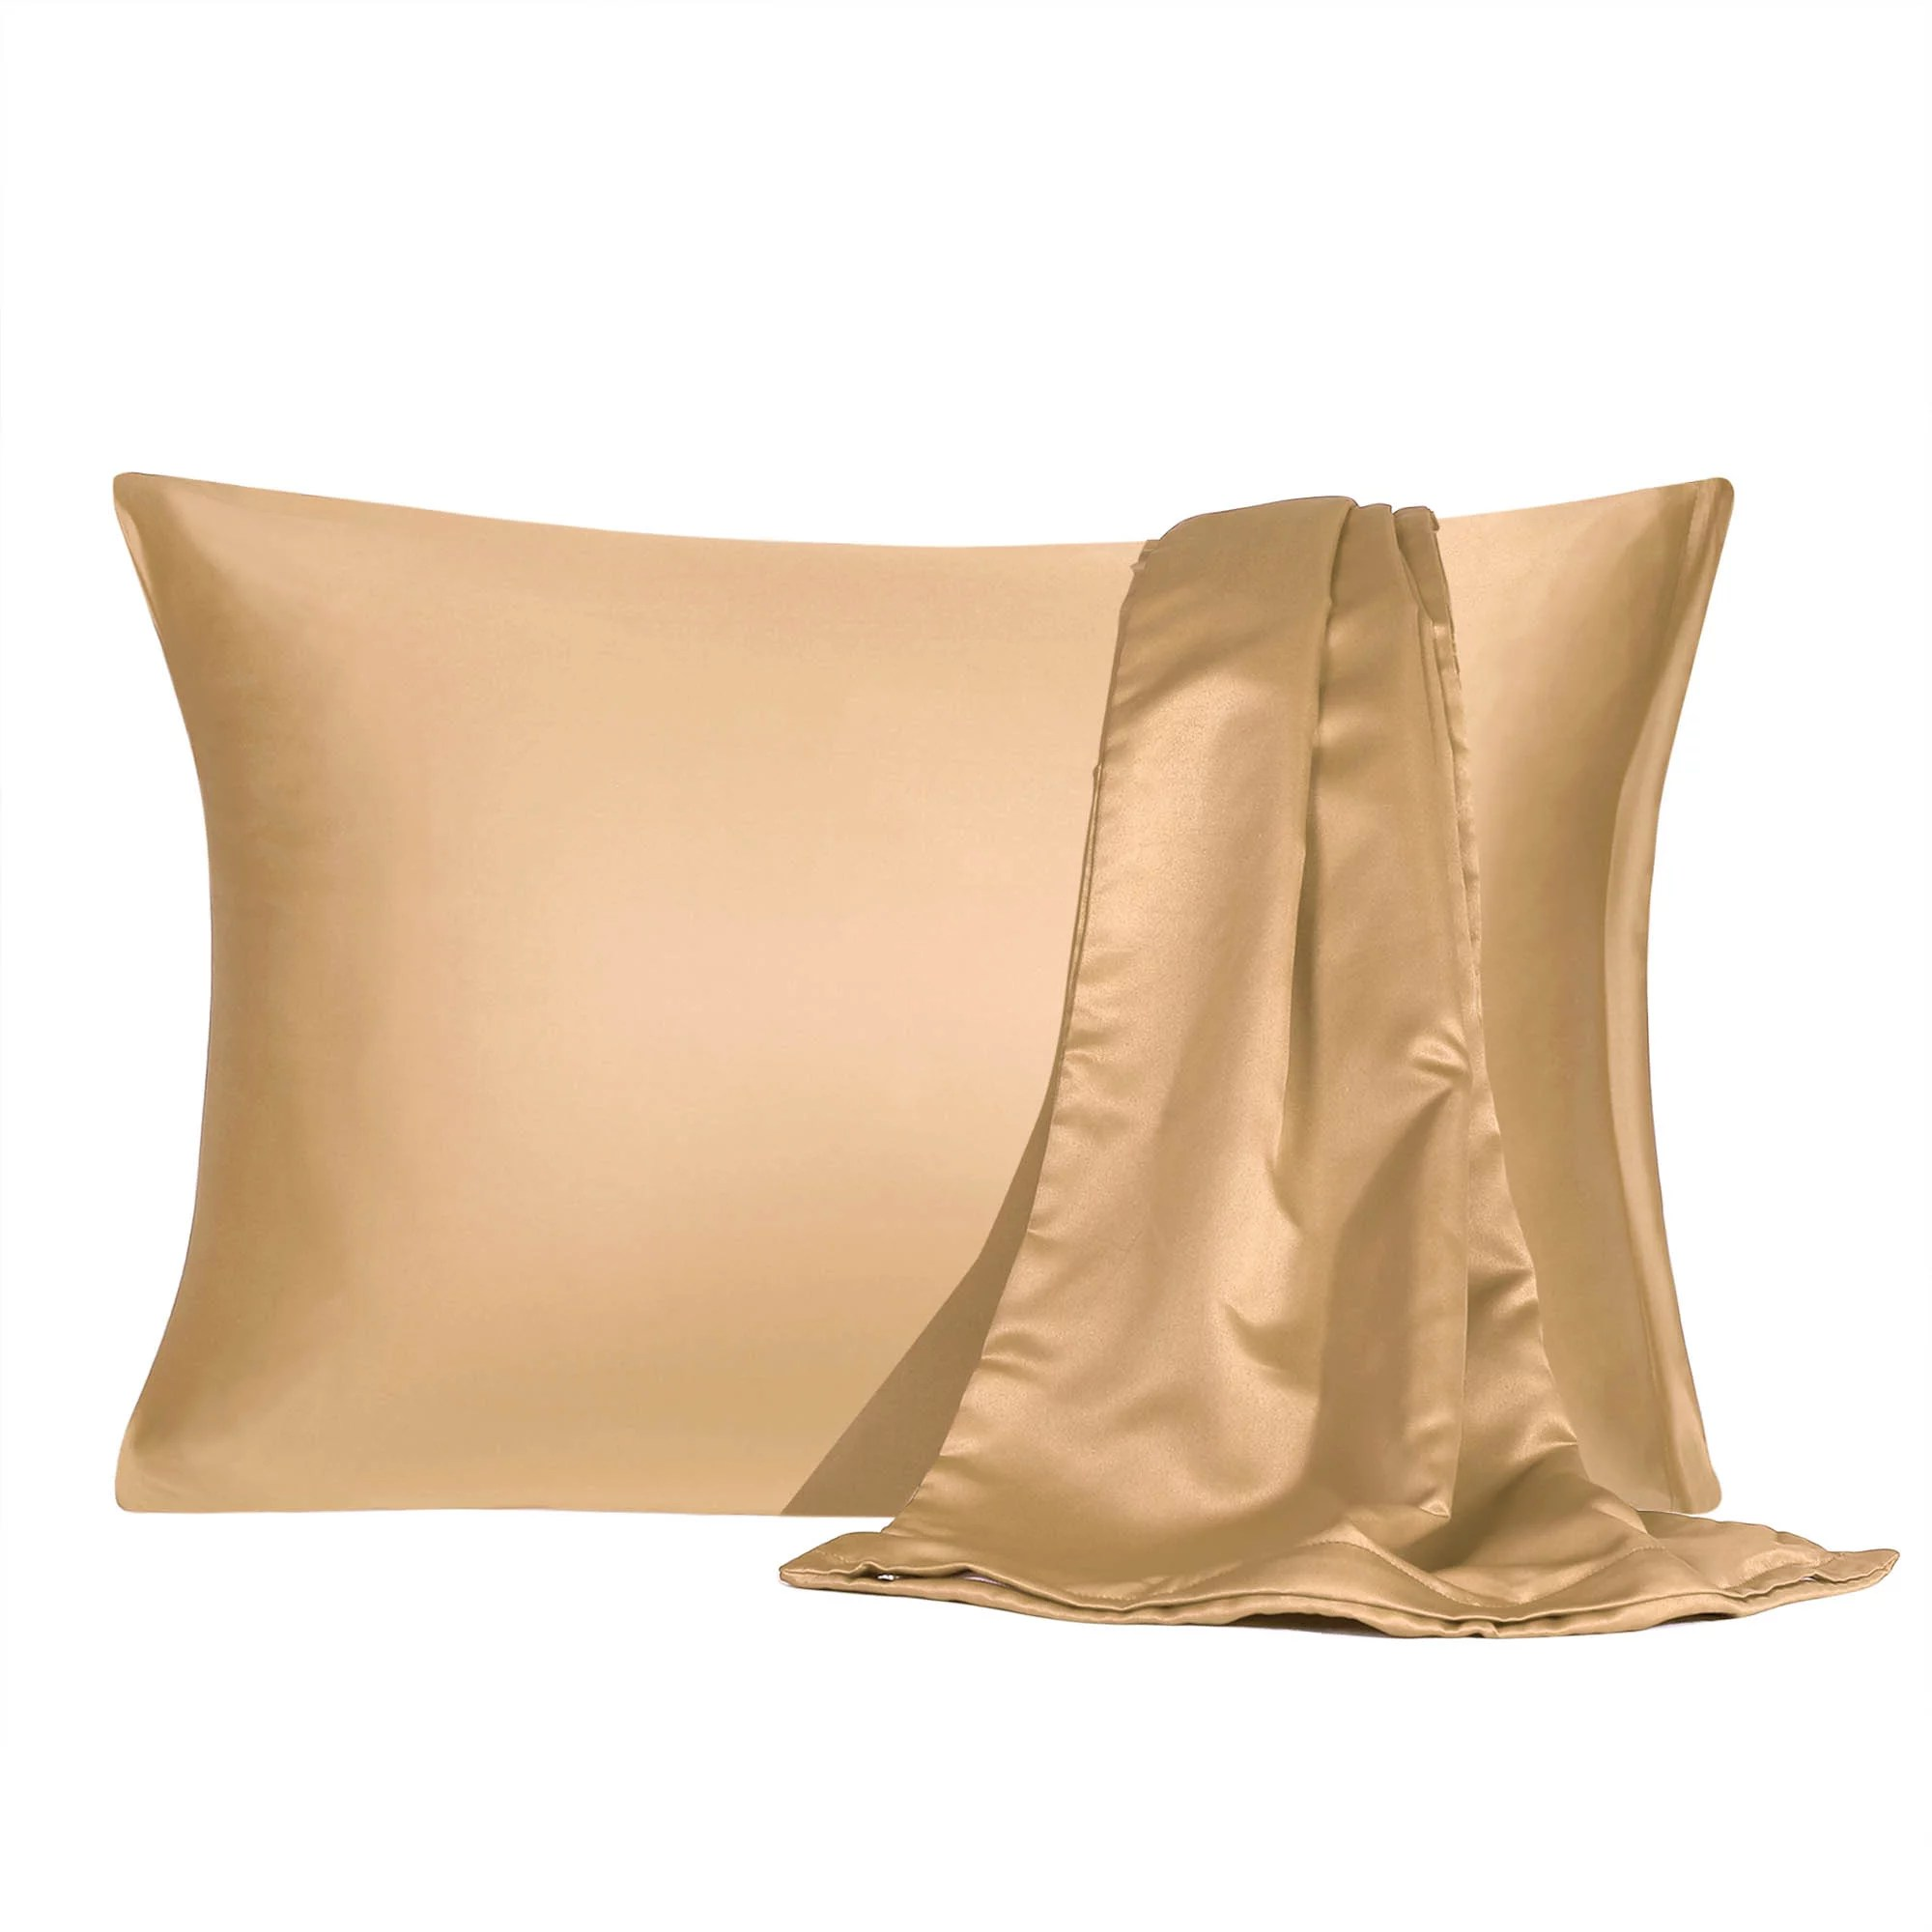 satin pillowcase with zipper king size set of 2 silky sateen pillow cases covers gold